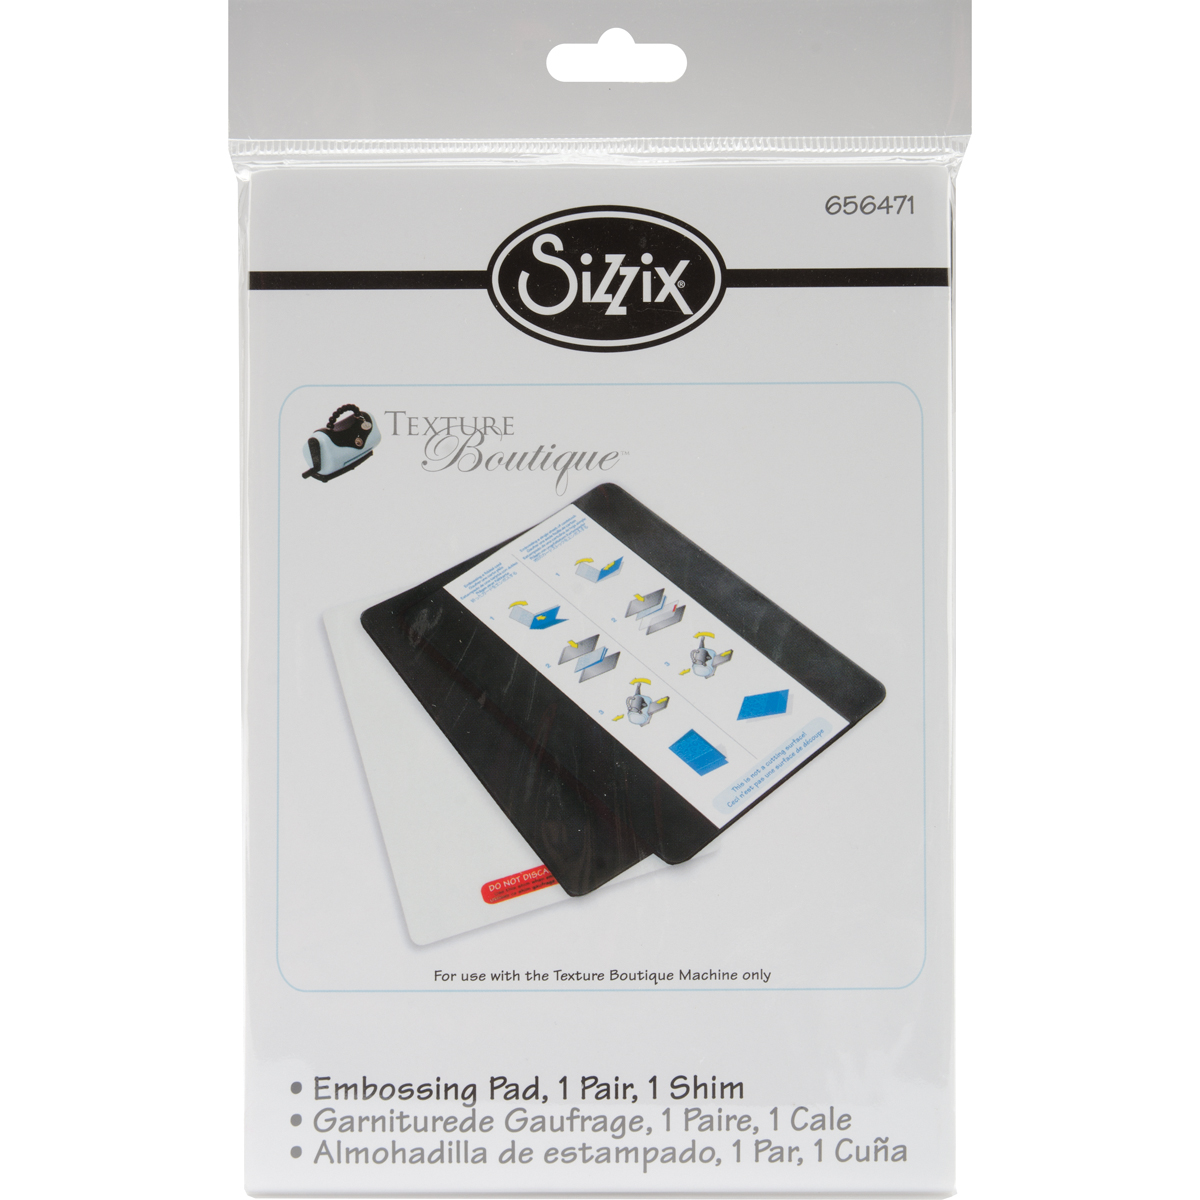 Sizzix Texture Boutique Embossing Pads-1 Pair W/Mylar Shim